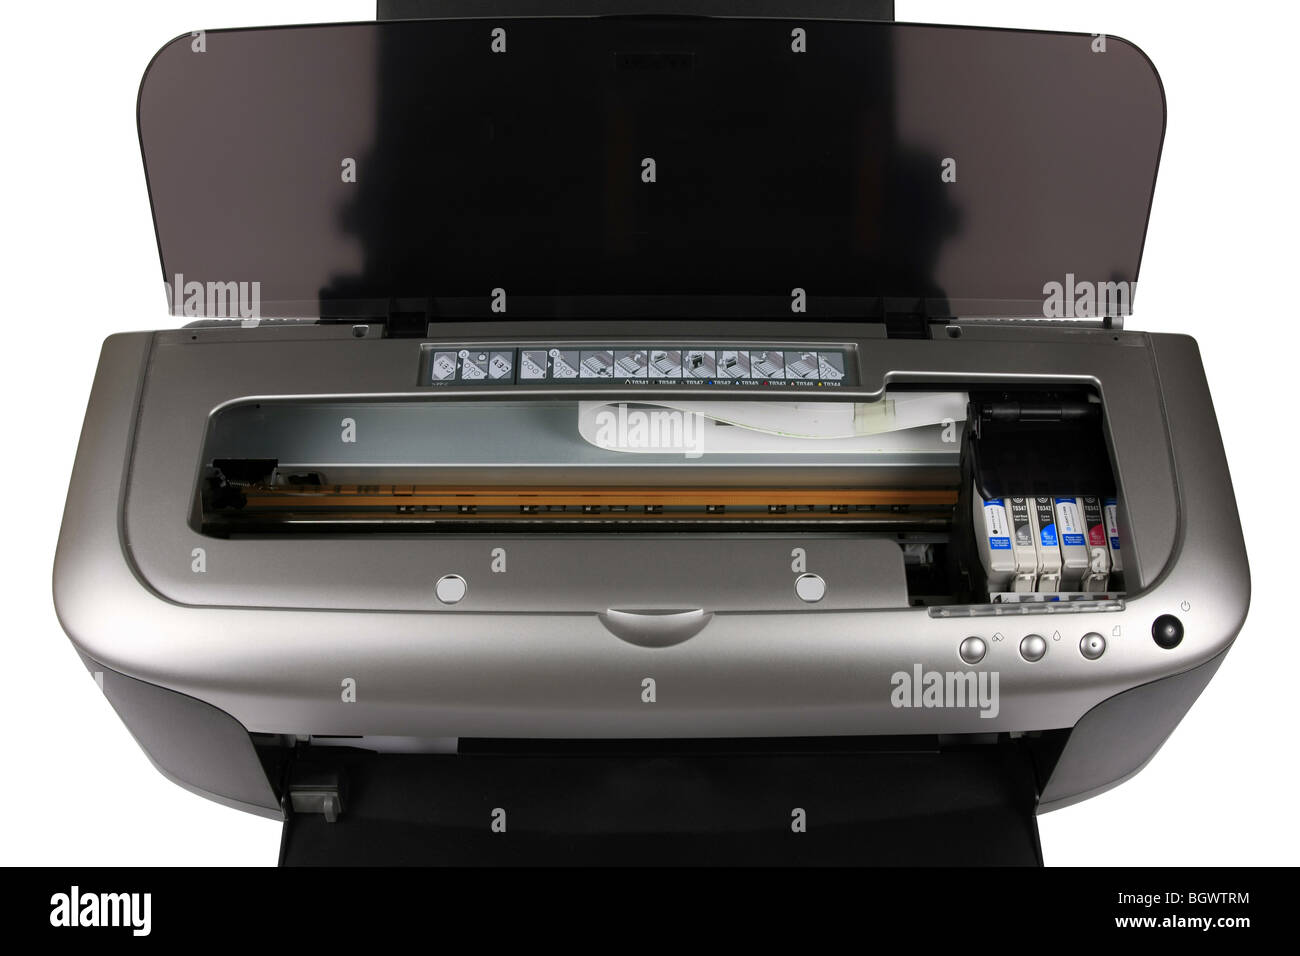 A3 Photo Printing Inside An A3 Inkjet Printer Showing The Cartridges And Printing